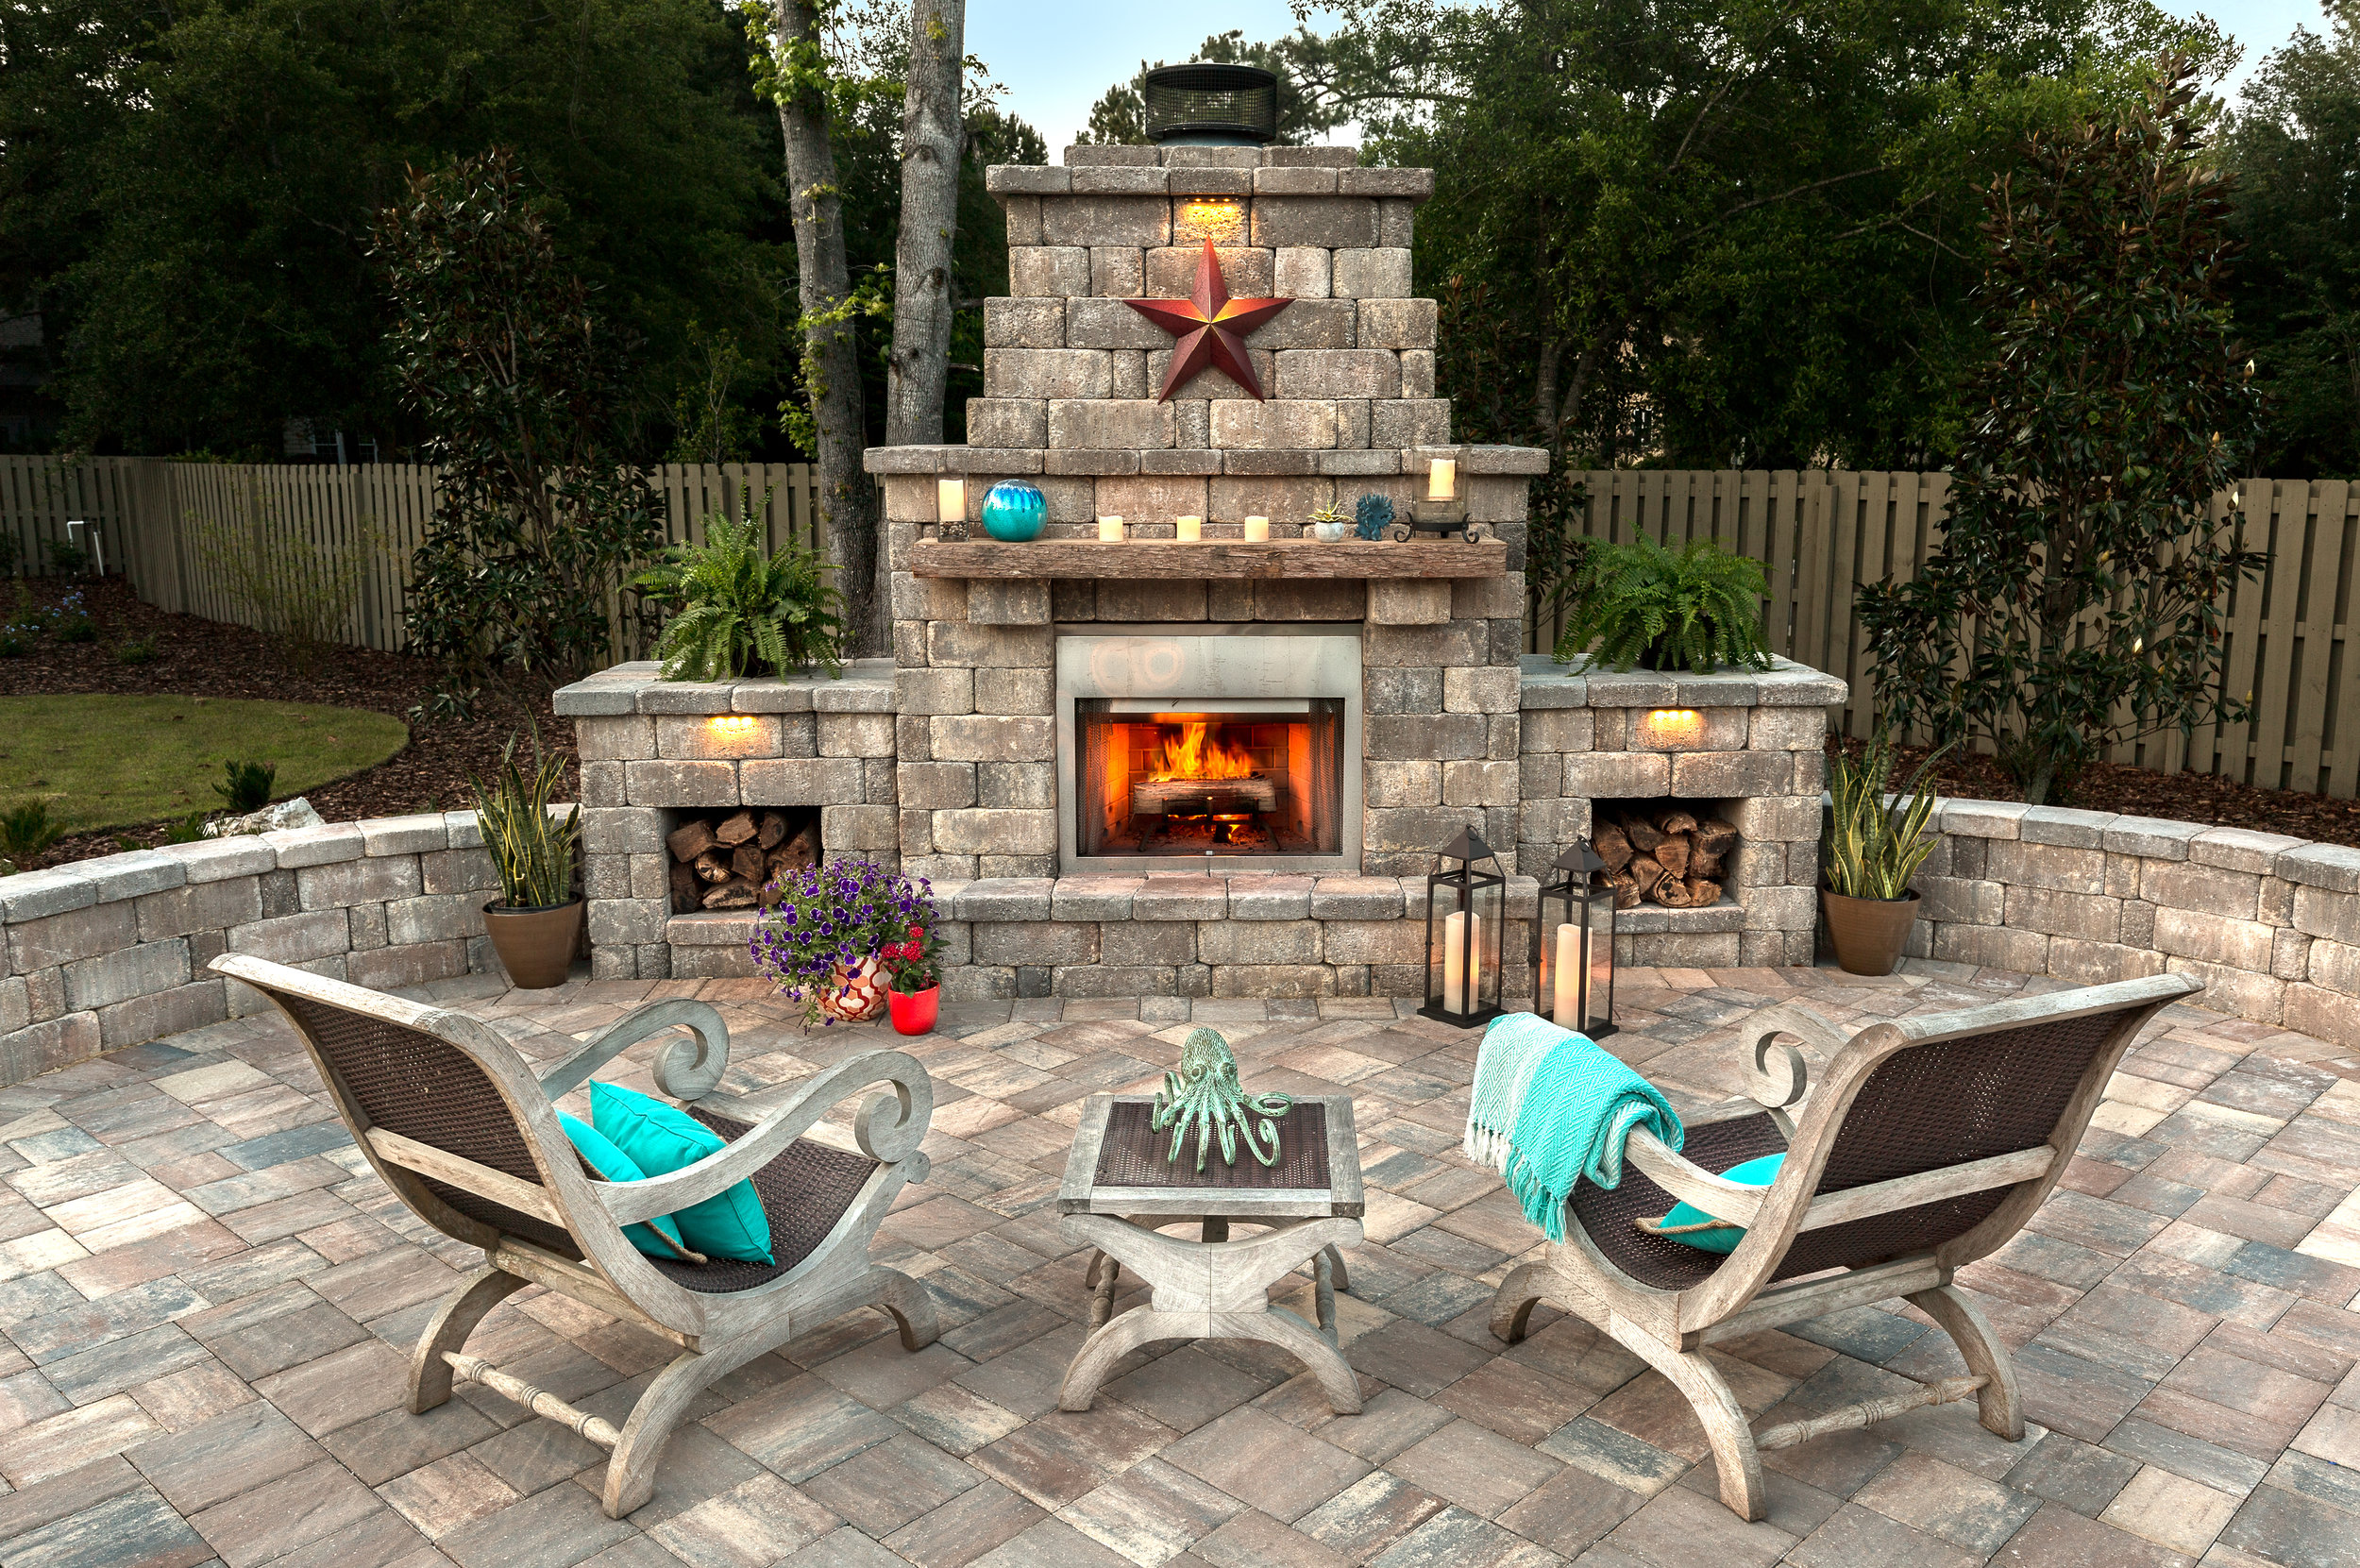 EXCEPTIONAL. This outdoor fireplace is pristine in every way! With its block-built structure, customized mantle and storage spaces, its the best place to sit back, relax and enjoy the cooler nights!